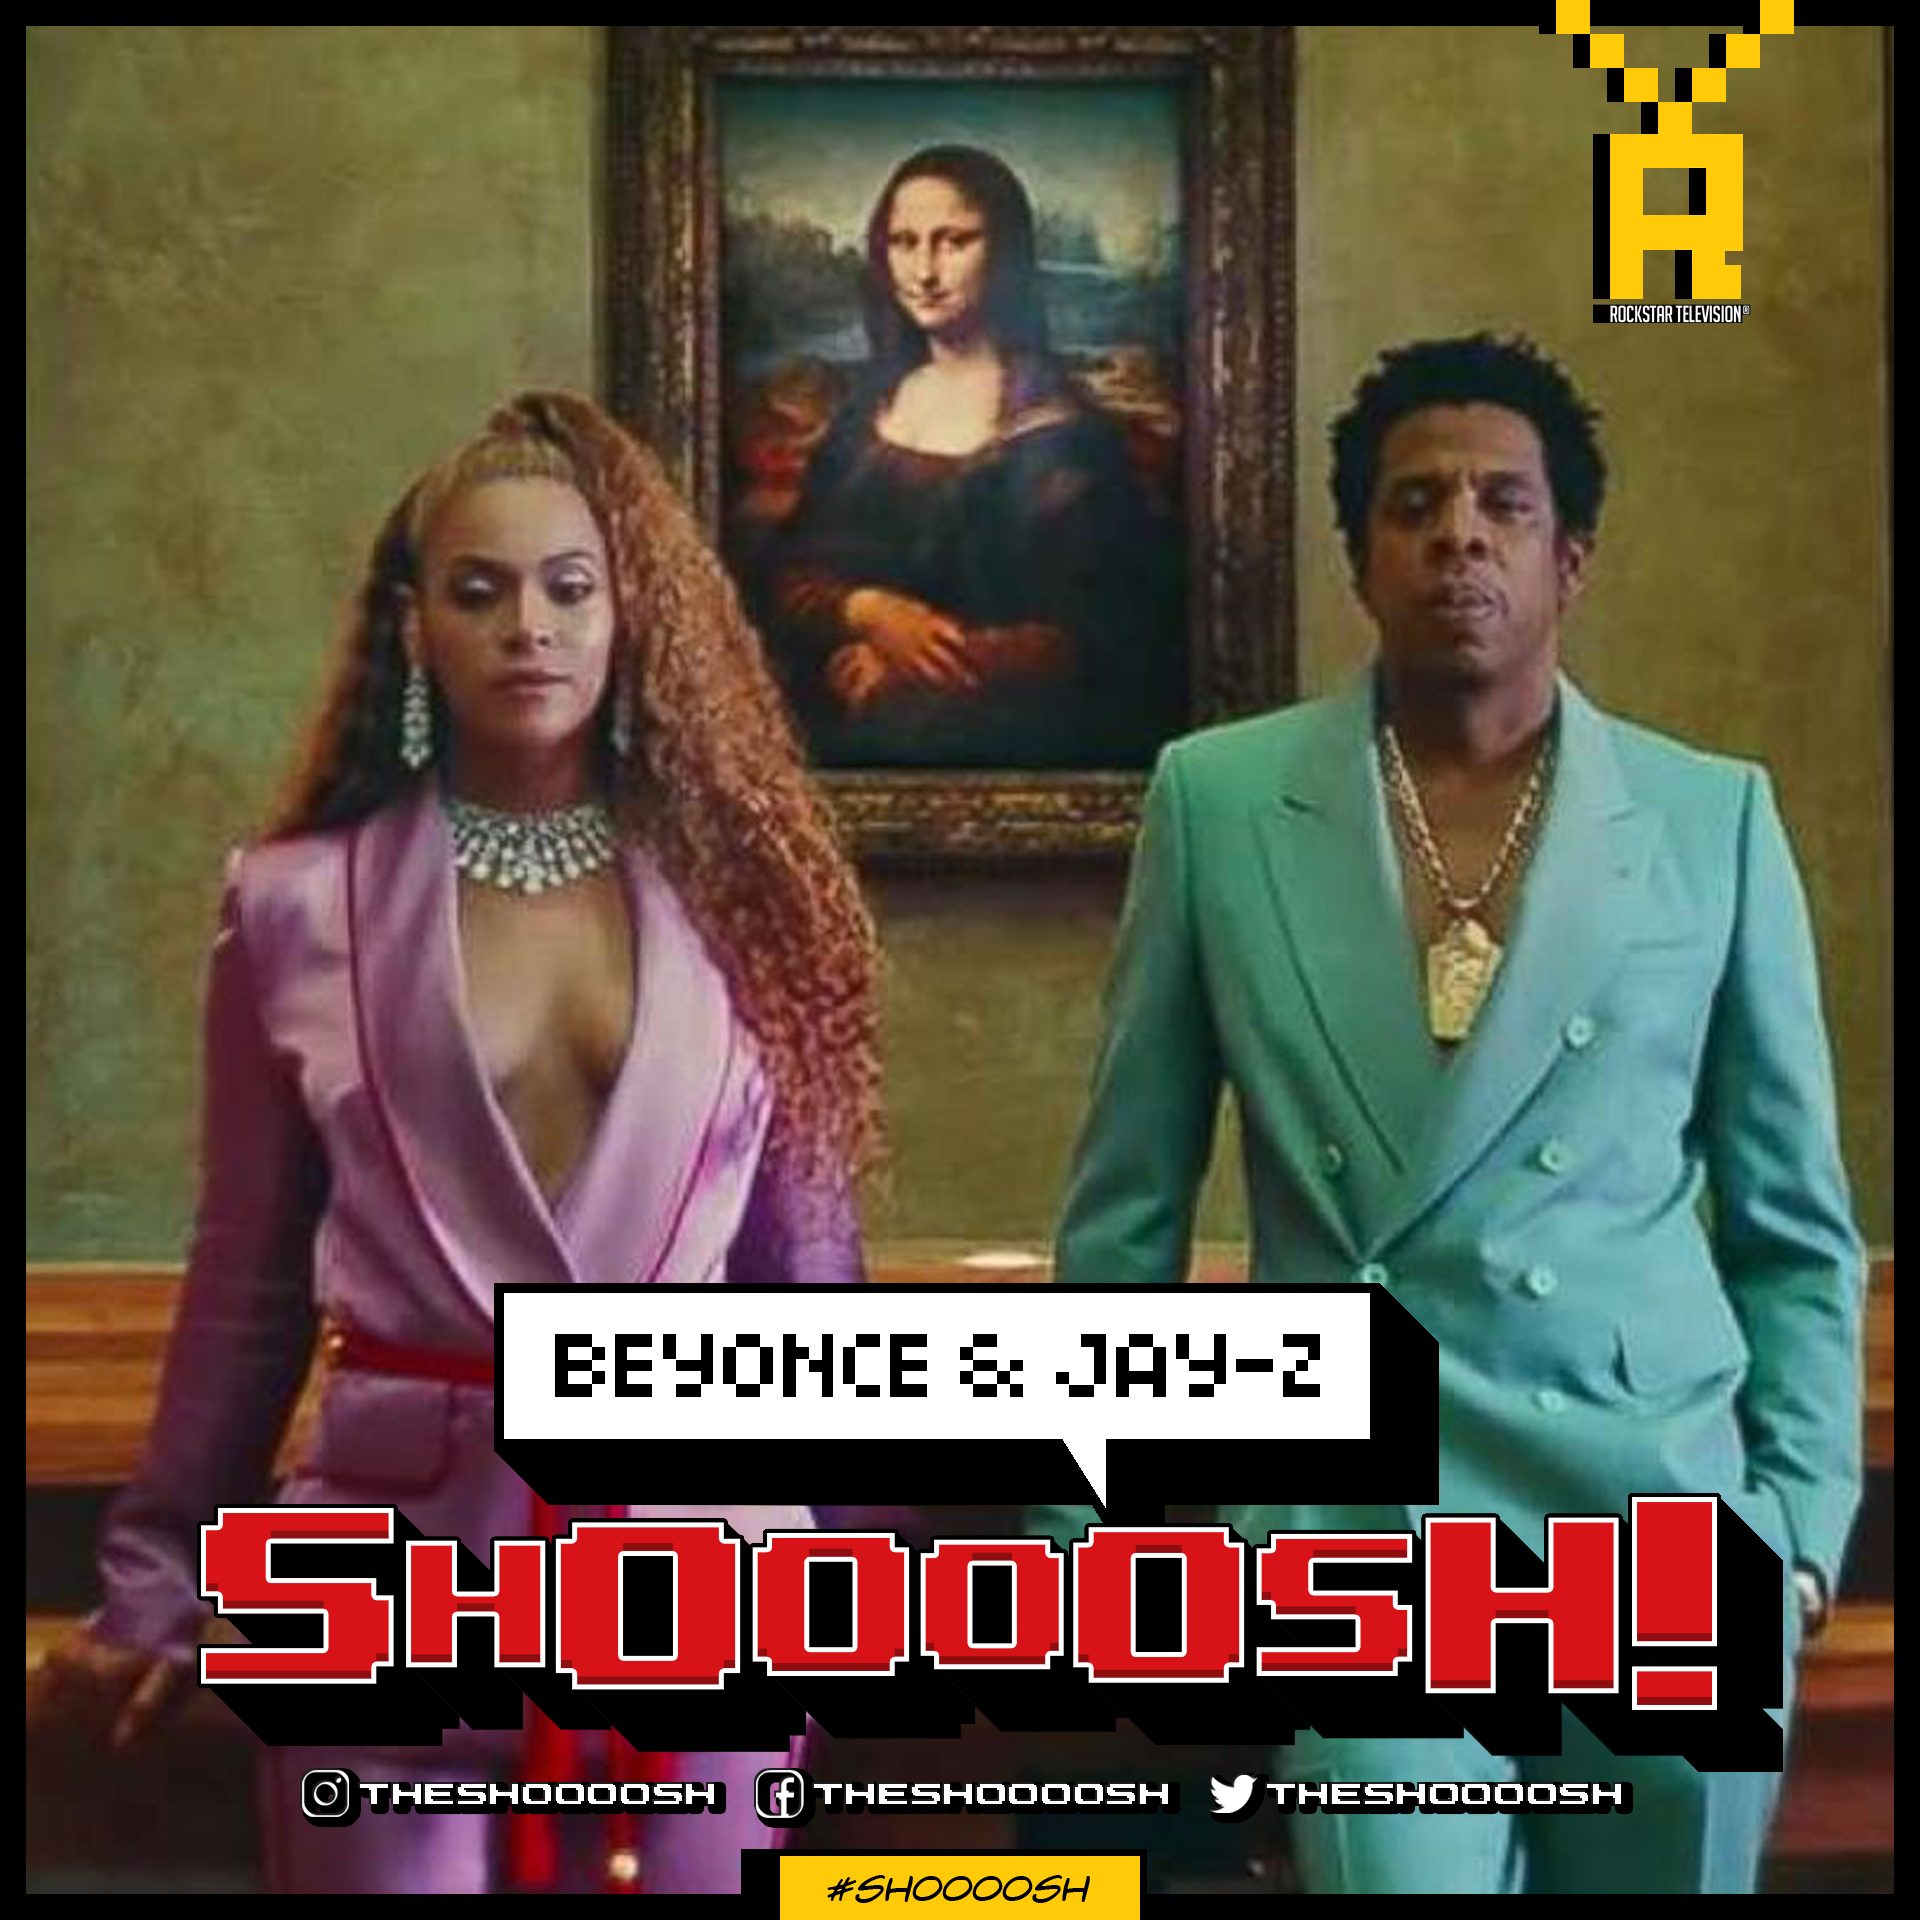 SHOOOOSH! BEYONCE AND JAYZ00001